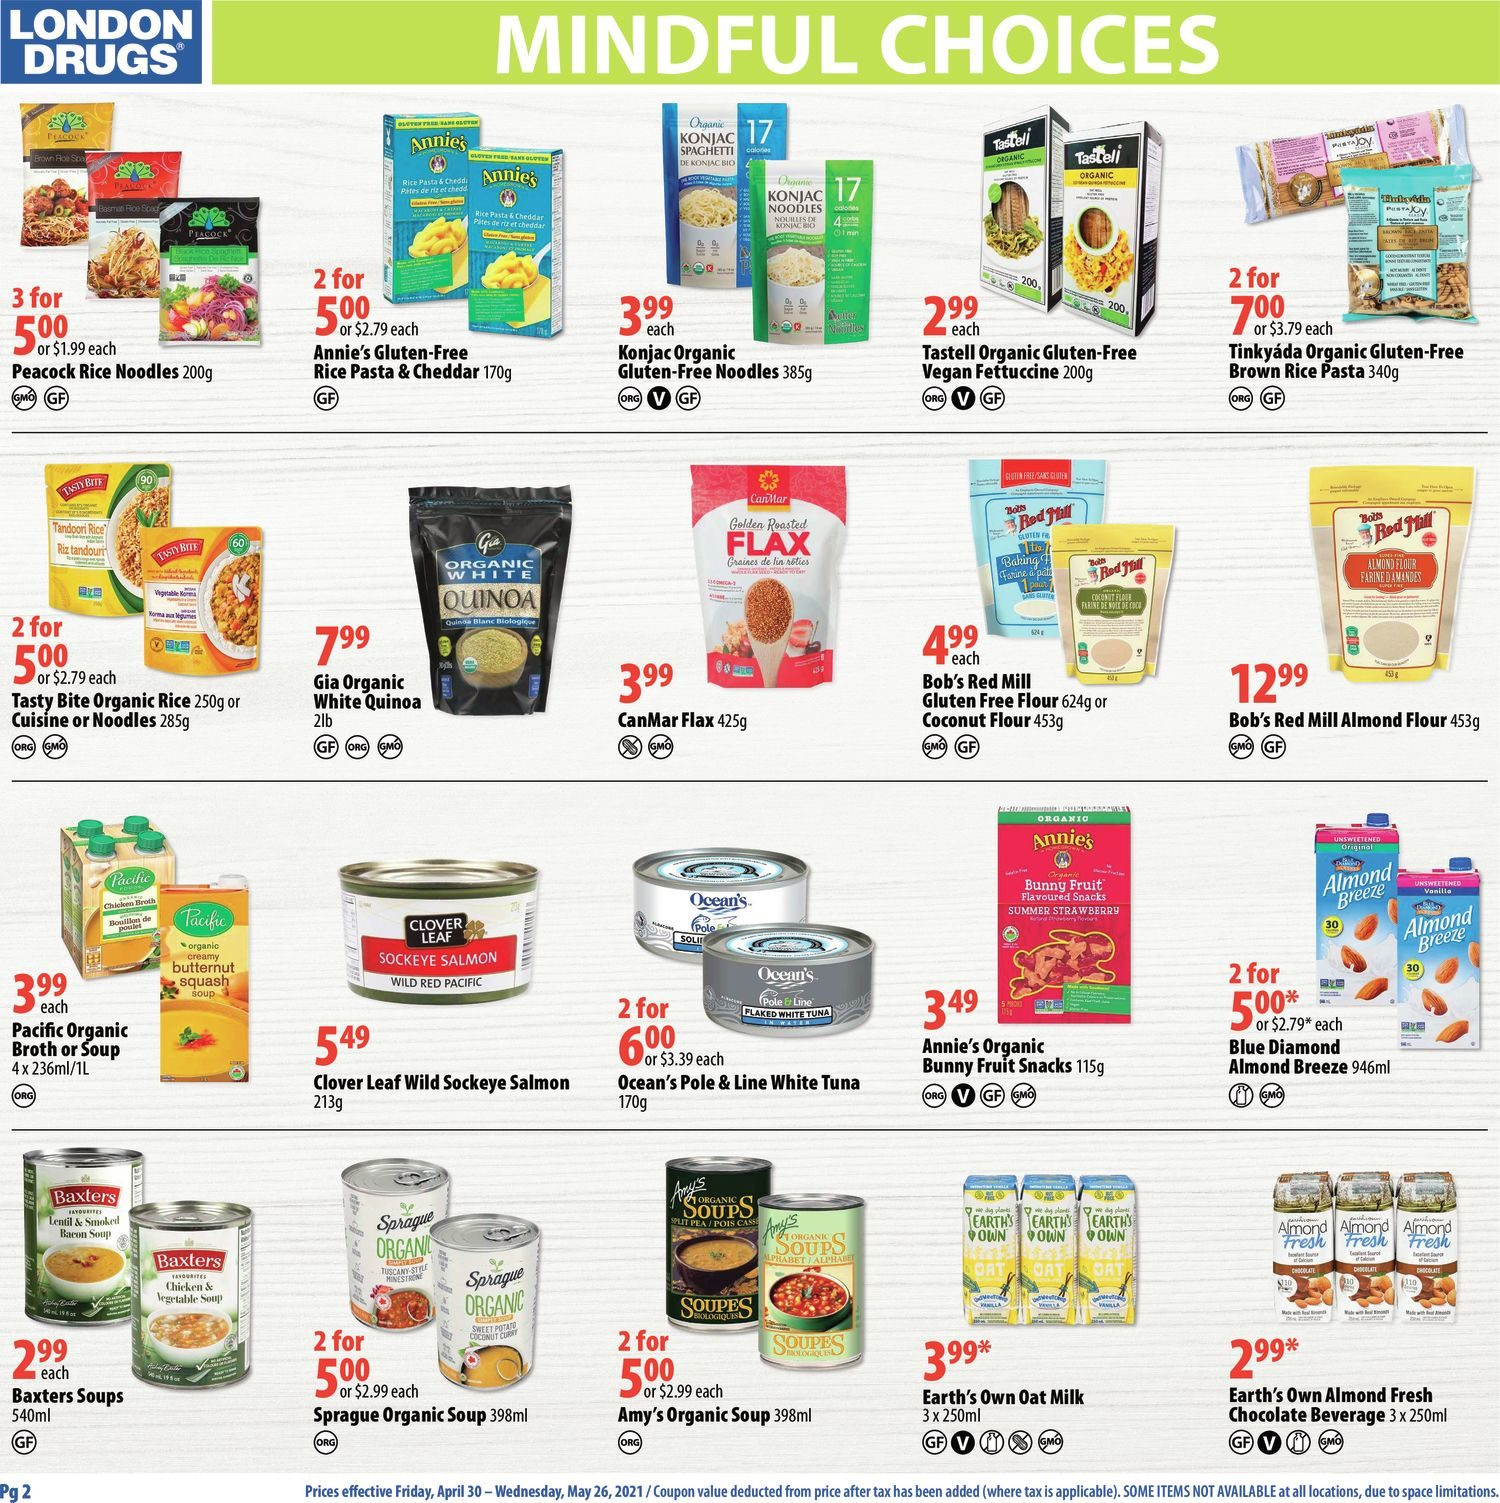 London Drugs - Mindful Choices - Choices To Support Your Lifestyle - Page 2